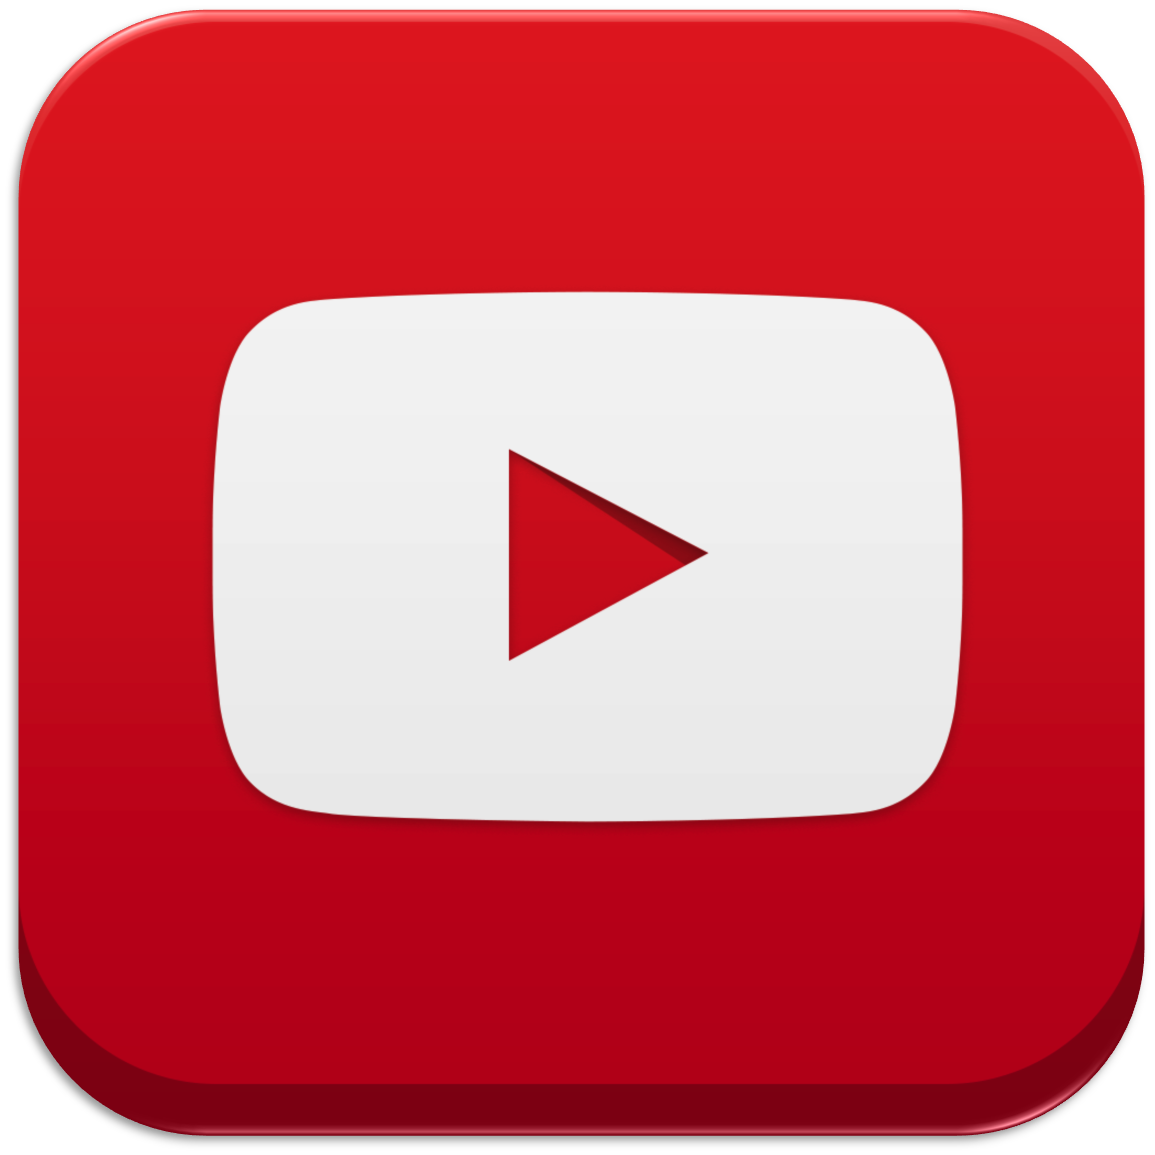 Youtube PNG - 6321